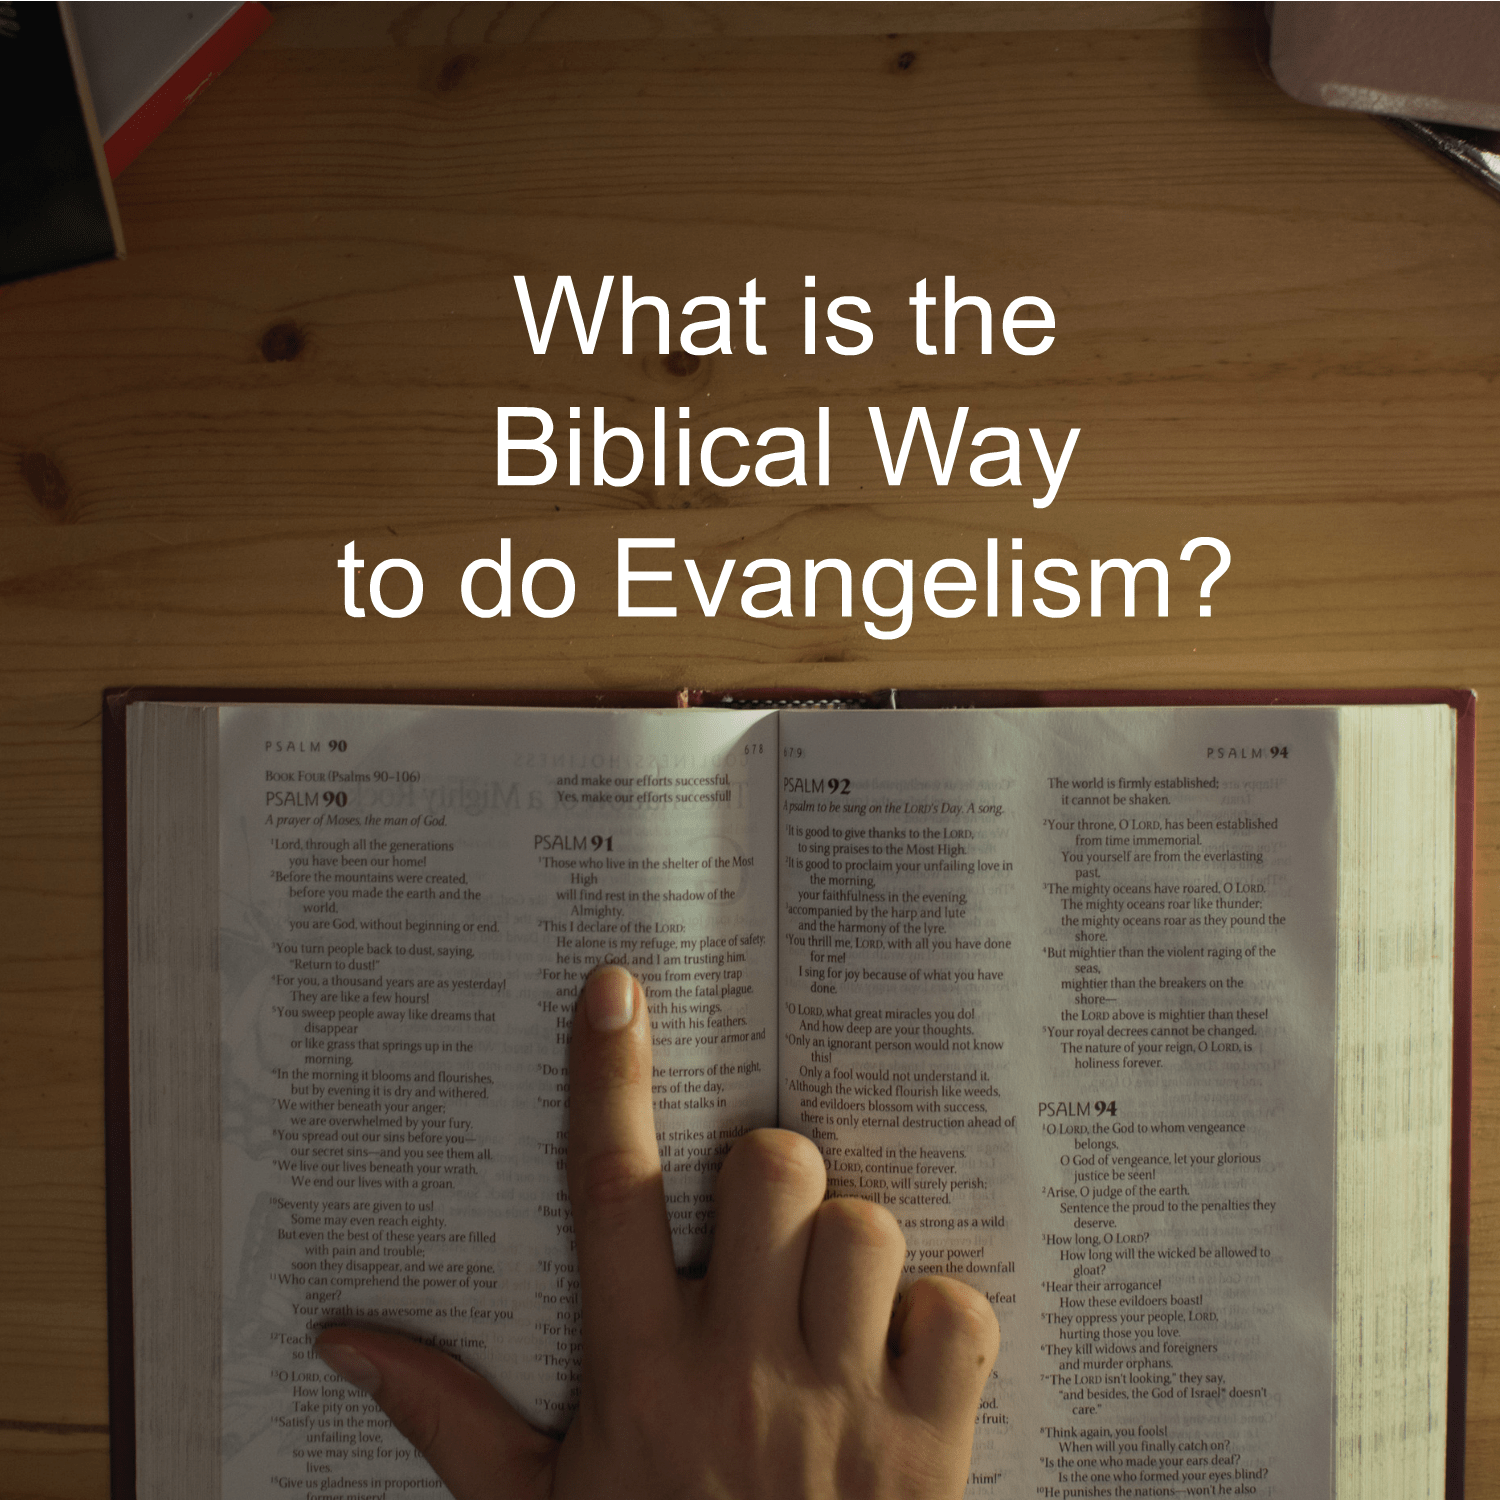 What is THE BIBLICAL WAY to do evangelism